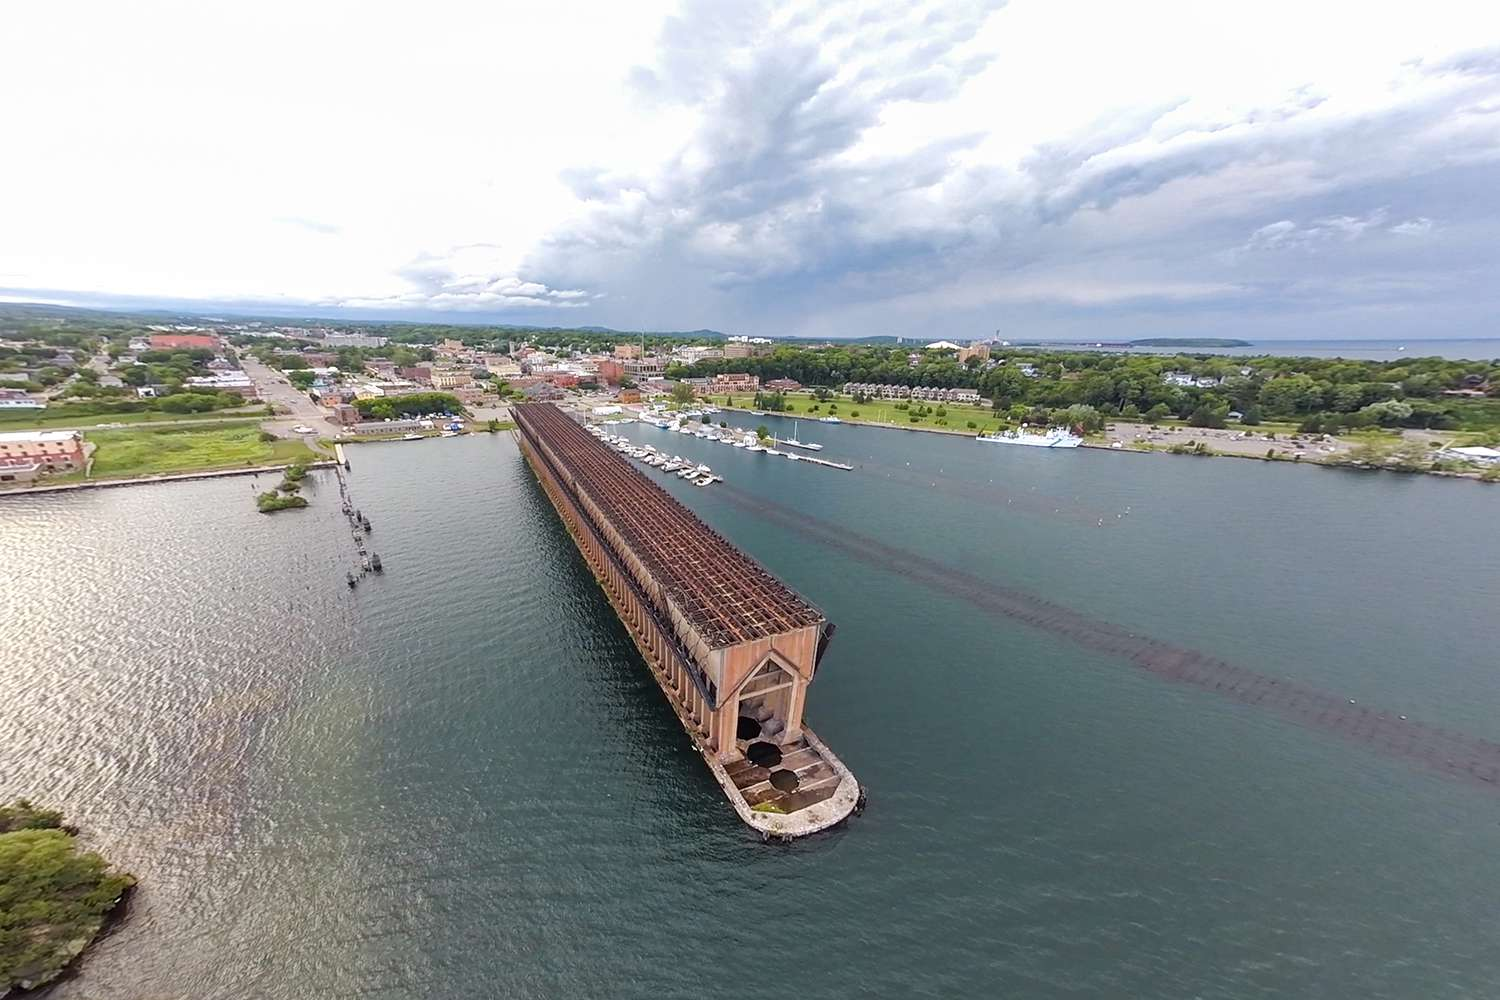 An aerial shot of the abandoned and iconic ore dock in Marquette, Michigan along the shore of Lake Superior.